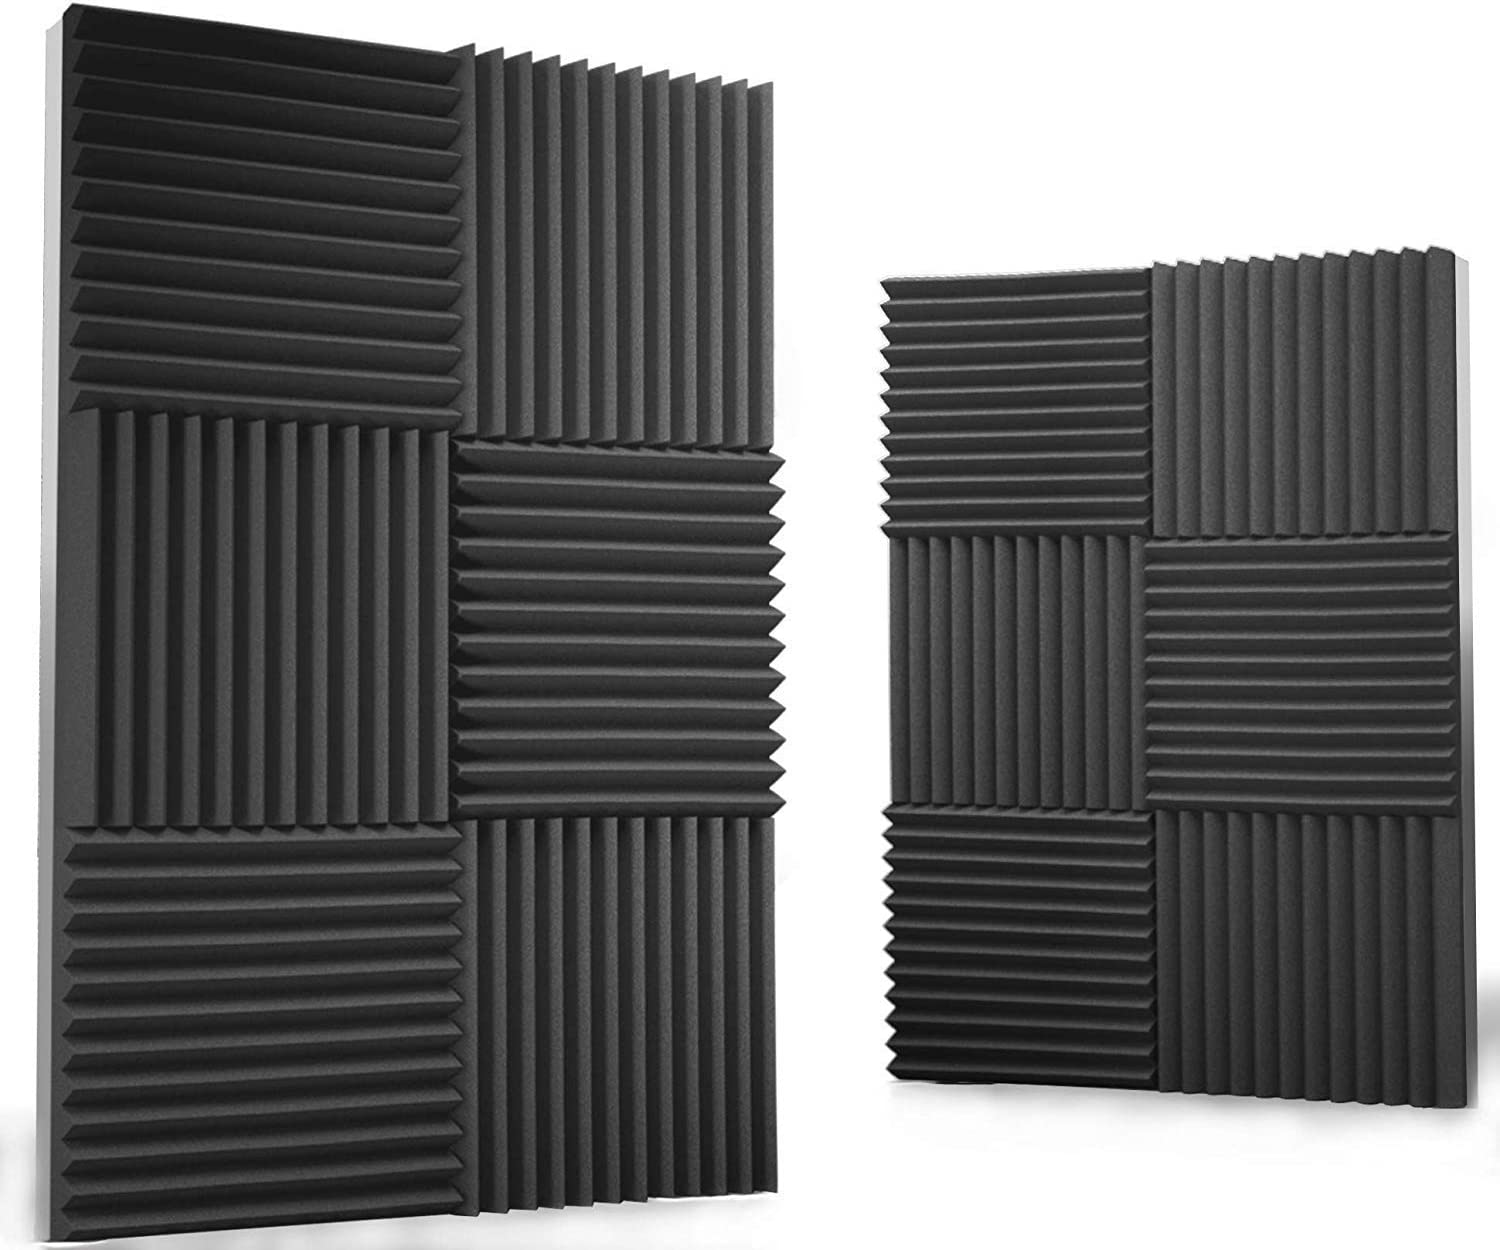 "Siless 12 pack Acoustic Panels 1"" X 12"" X 12"" – Acoustic Foam - Studio Foam Wedges - High Density Panels – Soundproof Wedges (Charcoal)"